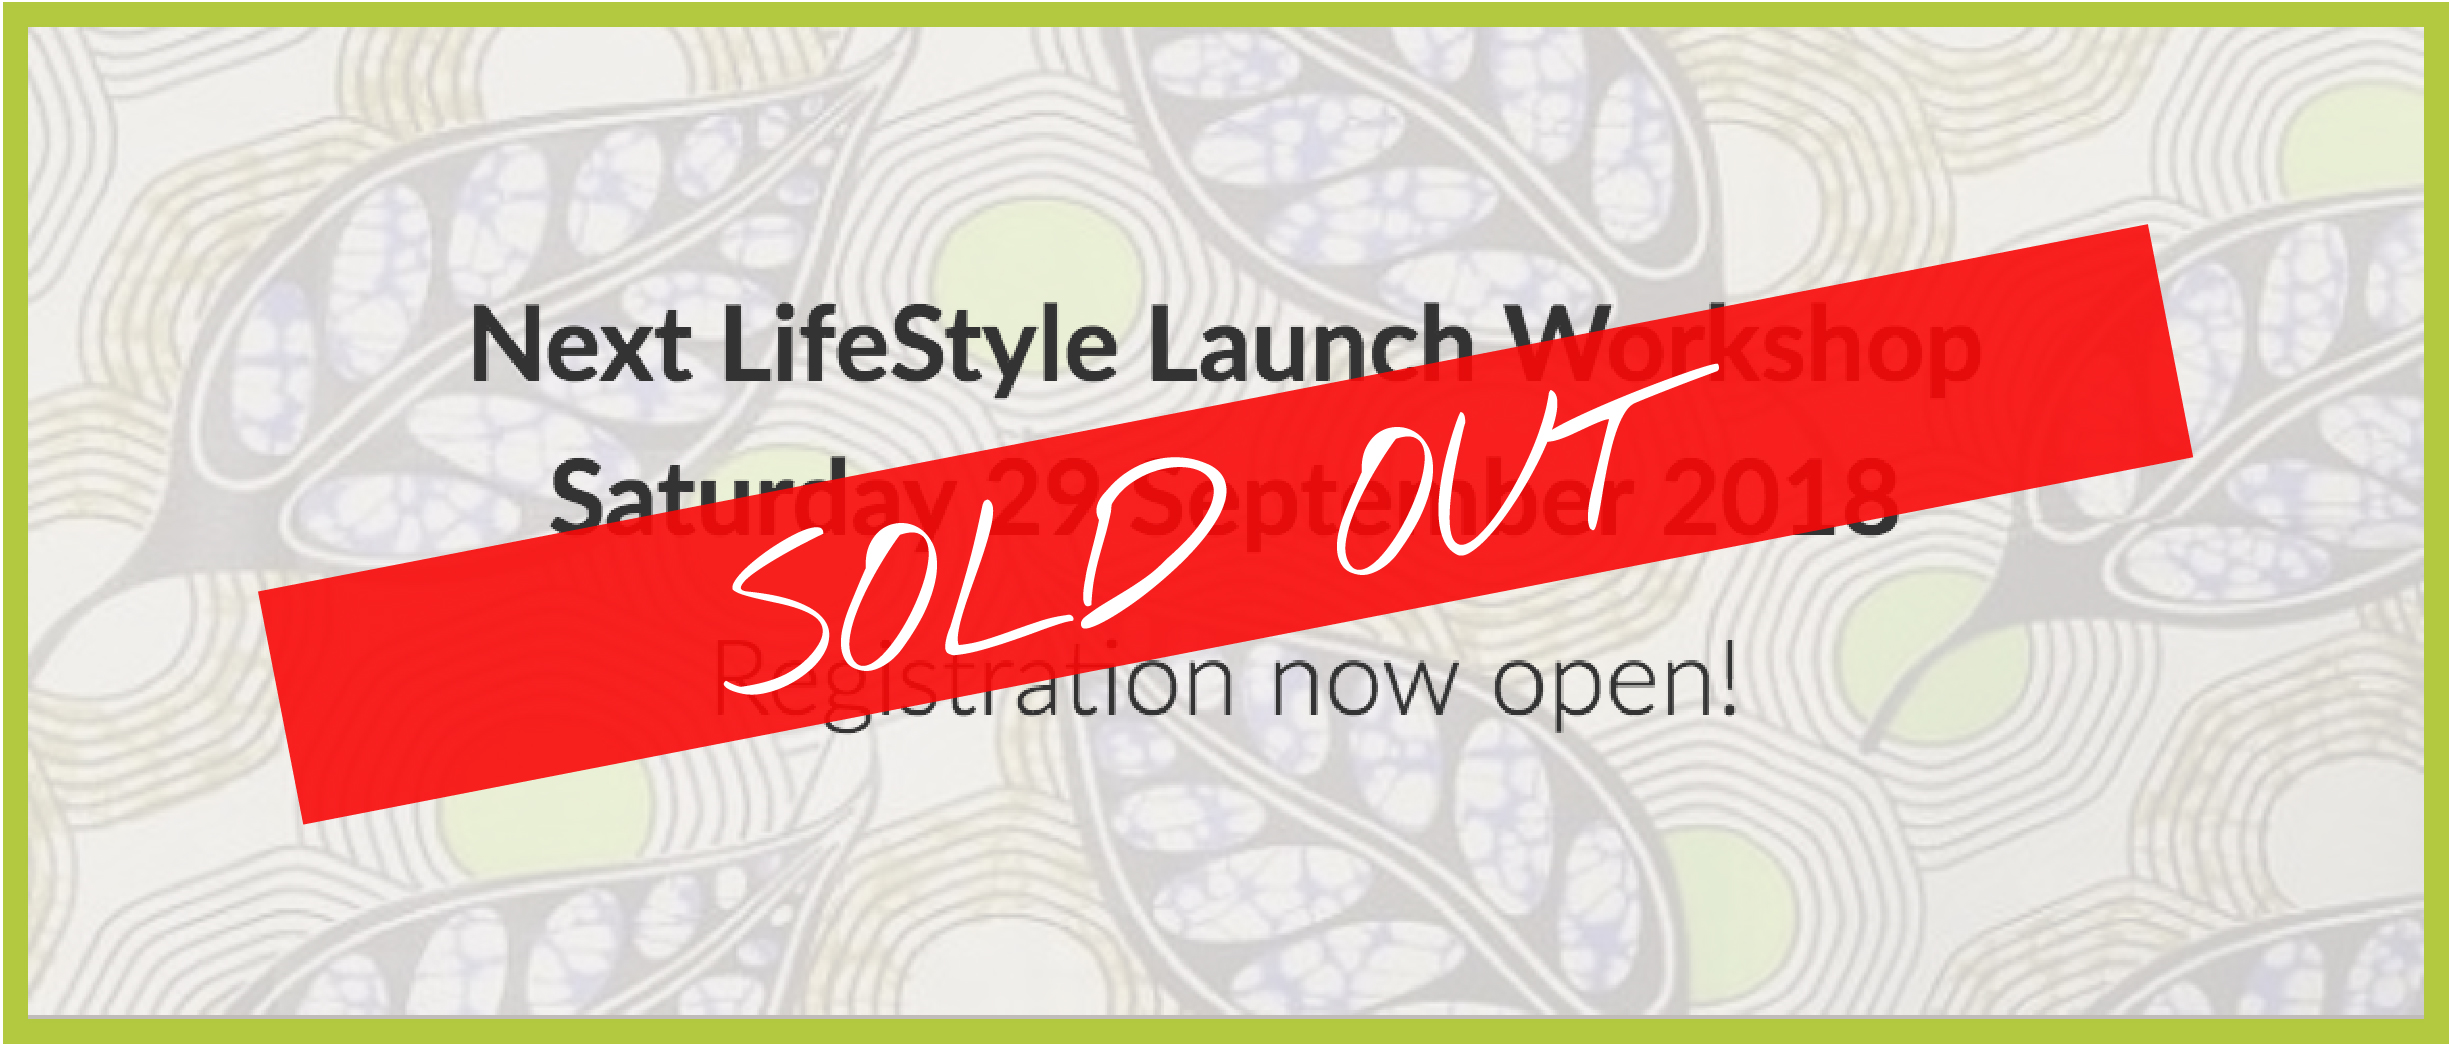 LifeStyle Launch - Sold Out 2